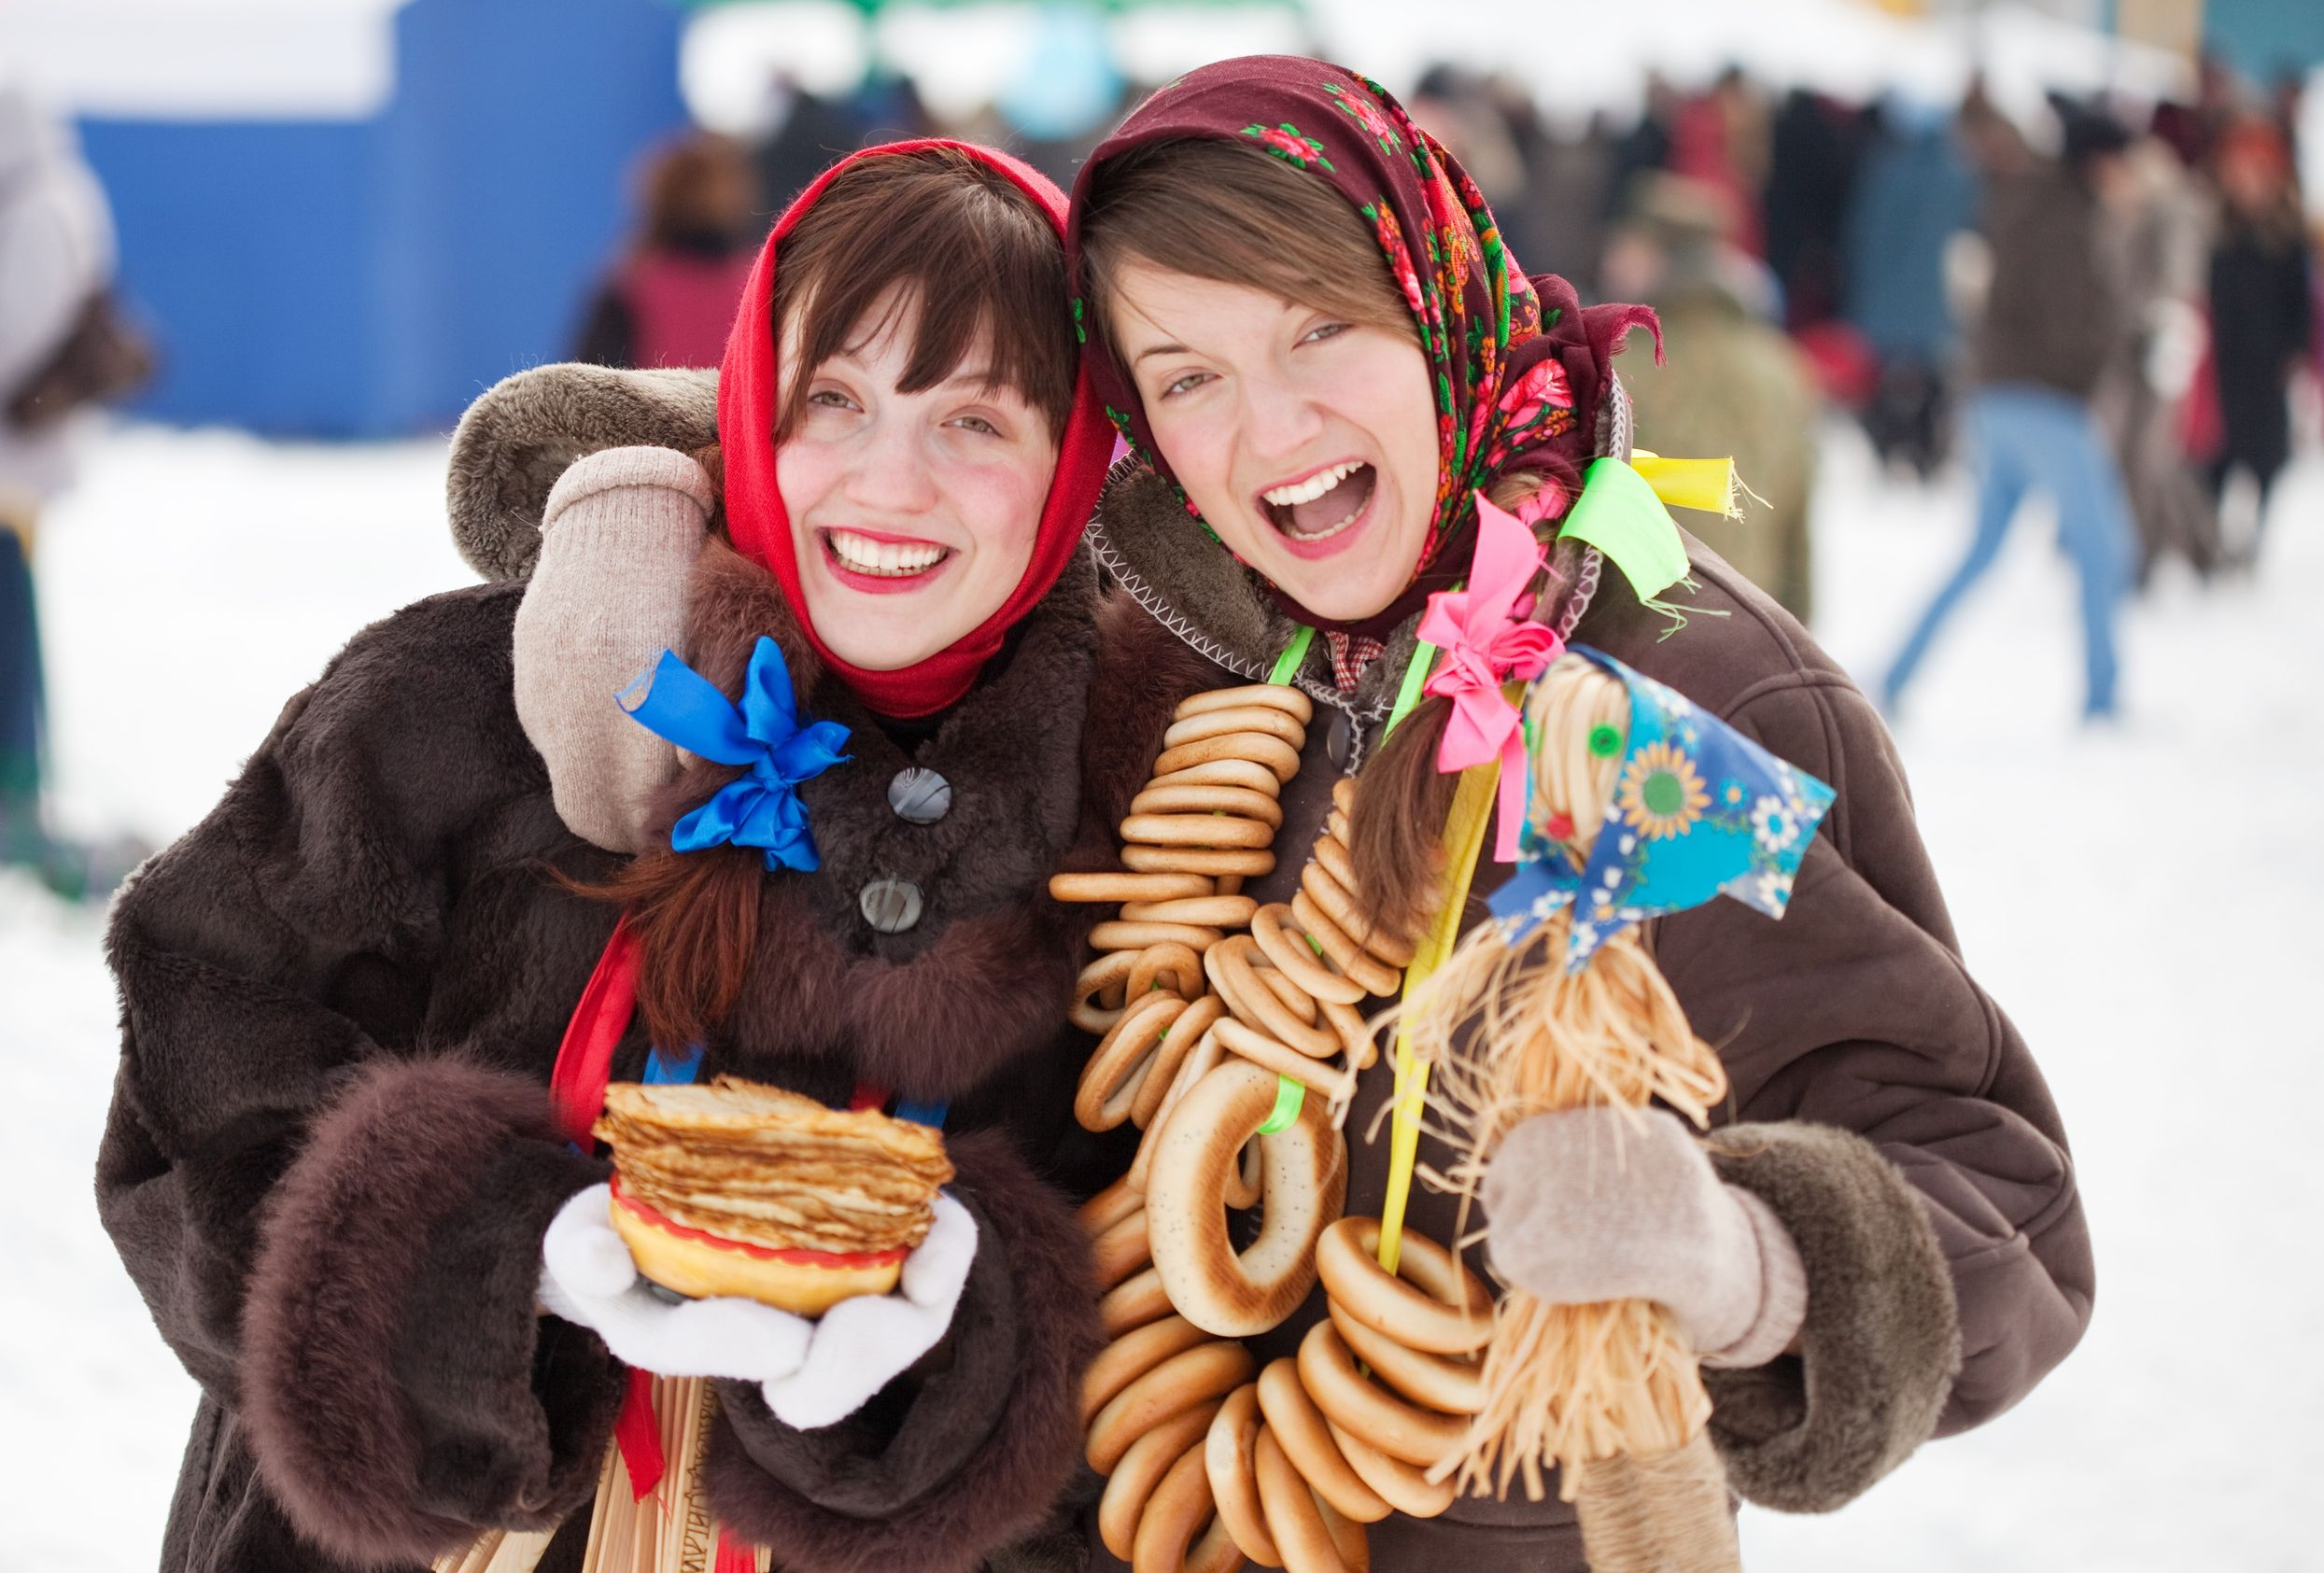 Image result for Pancake festival russia